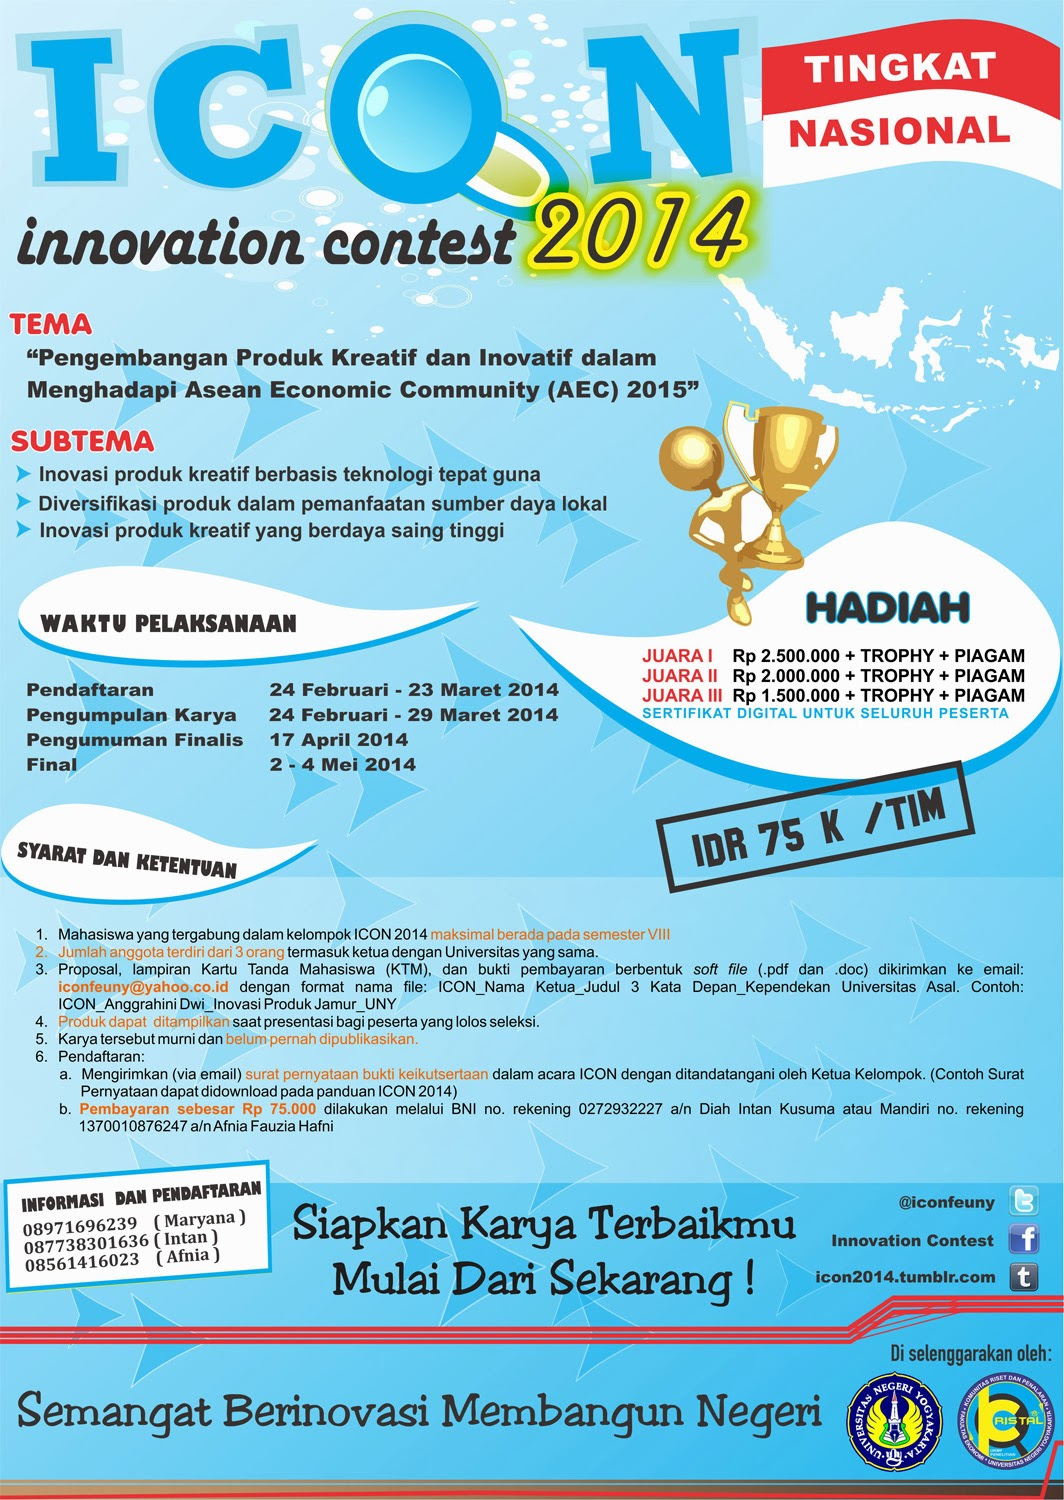 Innovation Contest 2014 uny